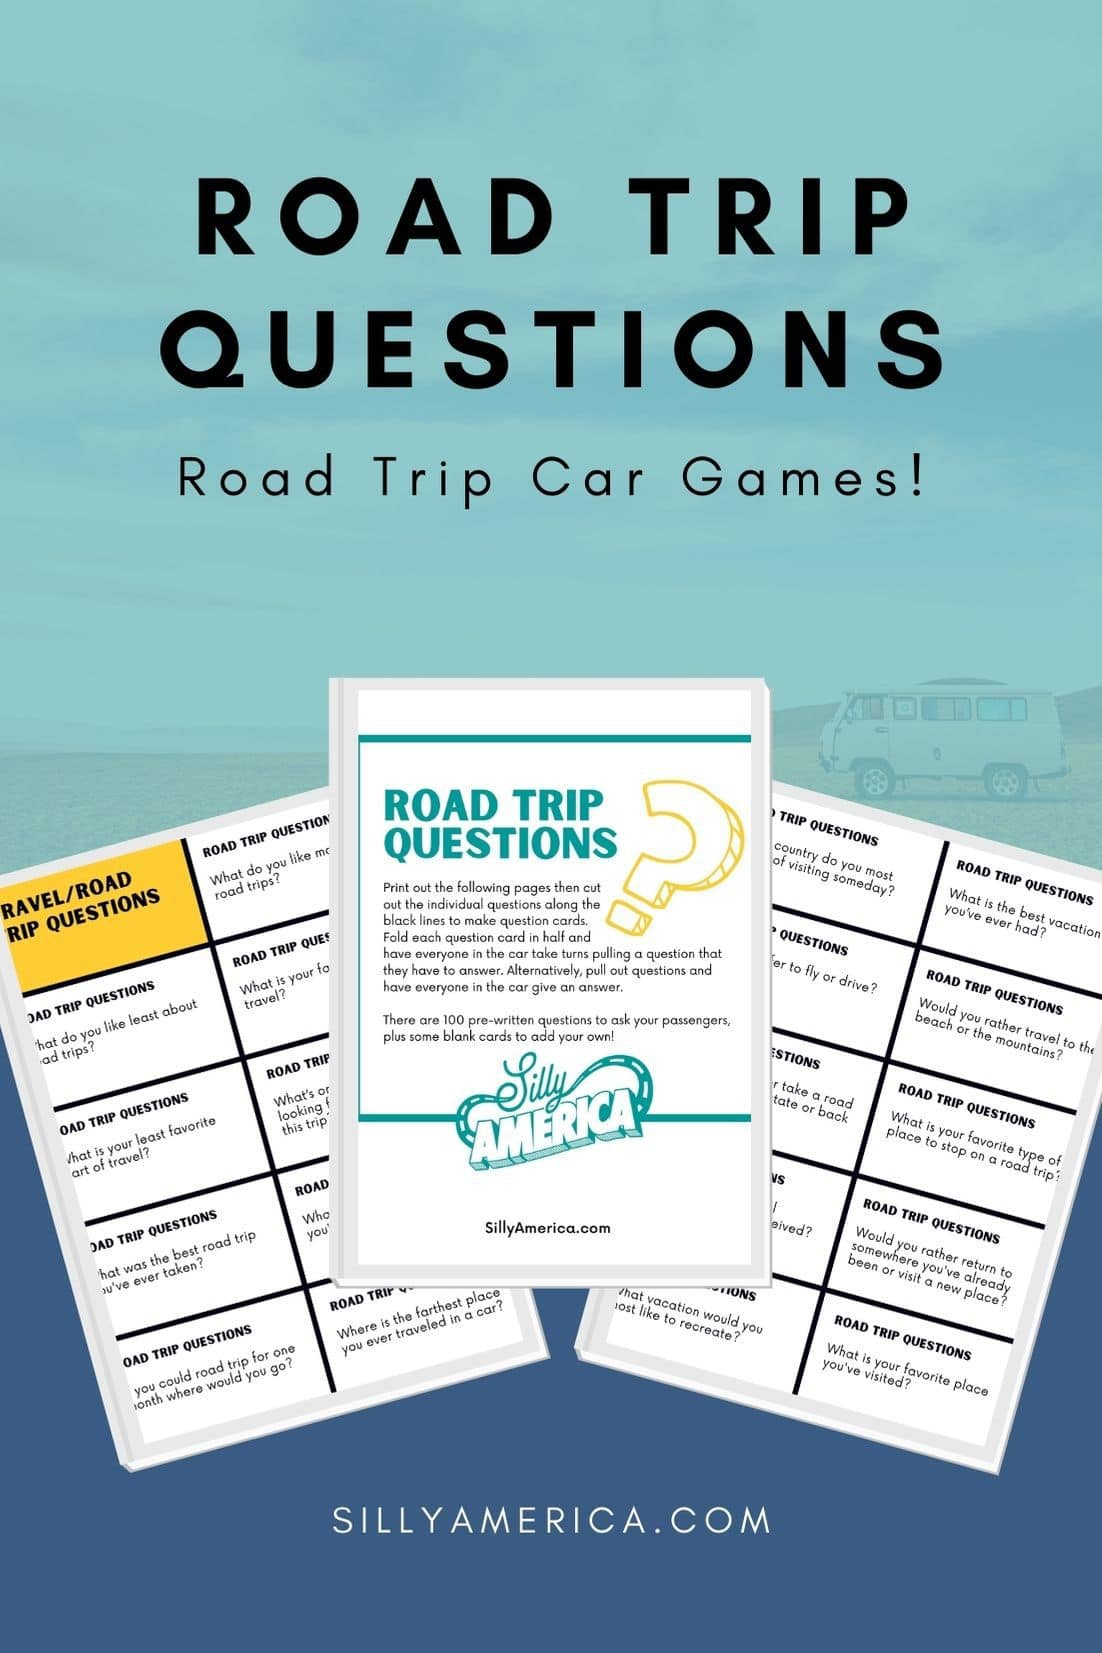 There are plenty of options for road trip entertainment. Why not spend some time in the car getting to know your passengers by taking turns answering road trip questions. Whether you're traveling with your partner, family, or friends, these car ride questions are the perfect ice breakers and conversation starters. Some are deep, others are just plain fun. These 100 pre-written questions to ask on a road trip are sure to get everyone in the car talking. #RoadTrip